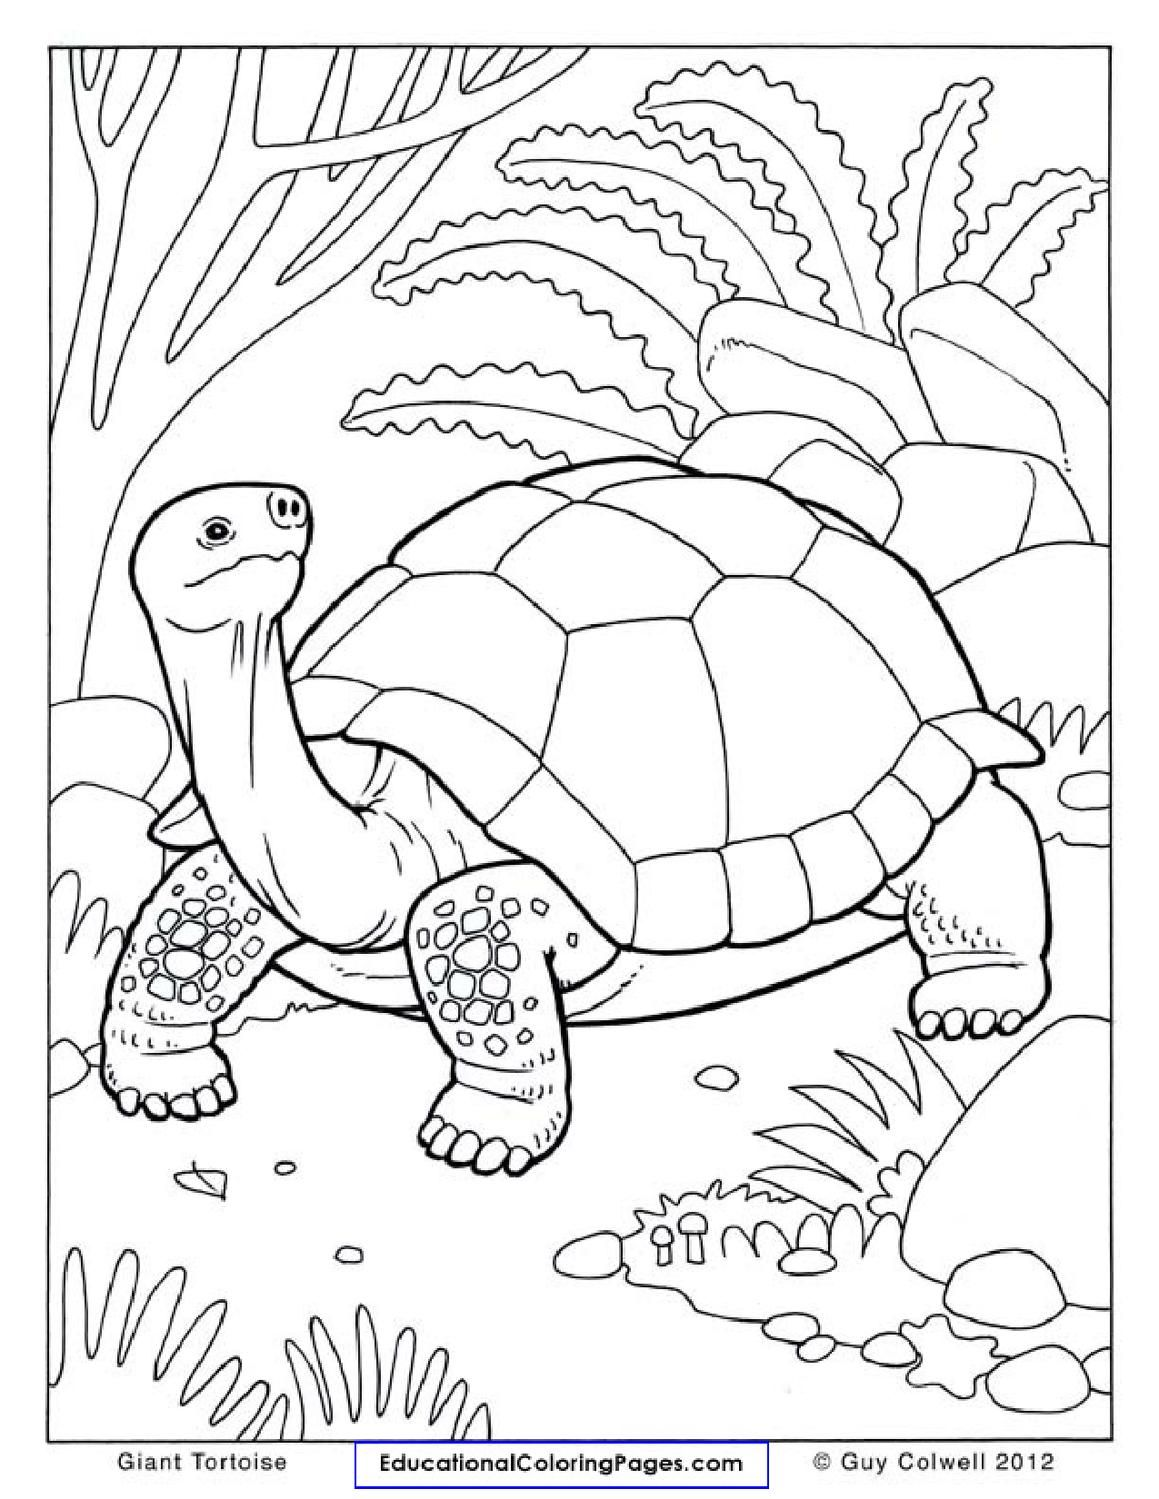 Natural Coloring Books Turtle Coloring Pages Coloring Pages Superhero Coloring Pages